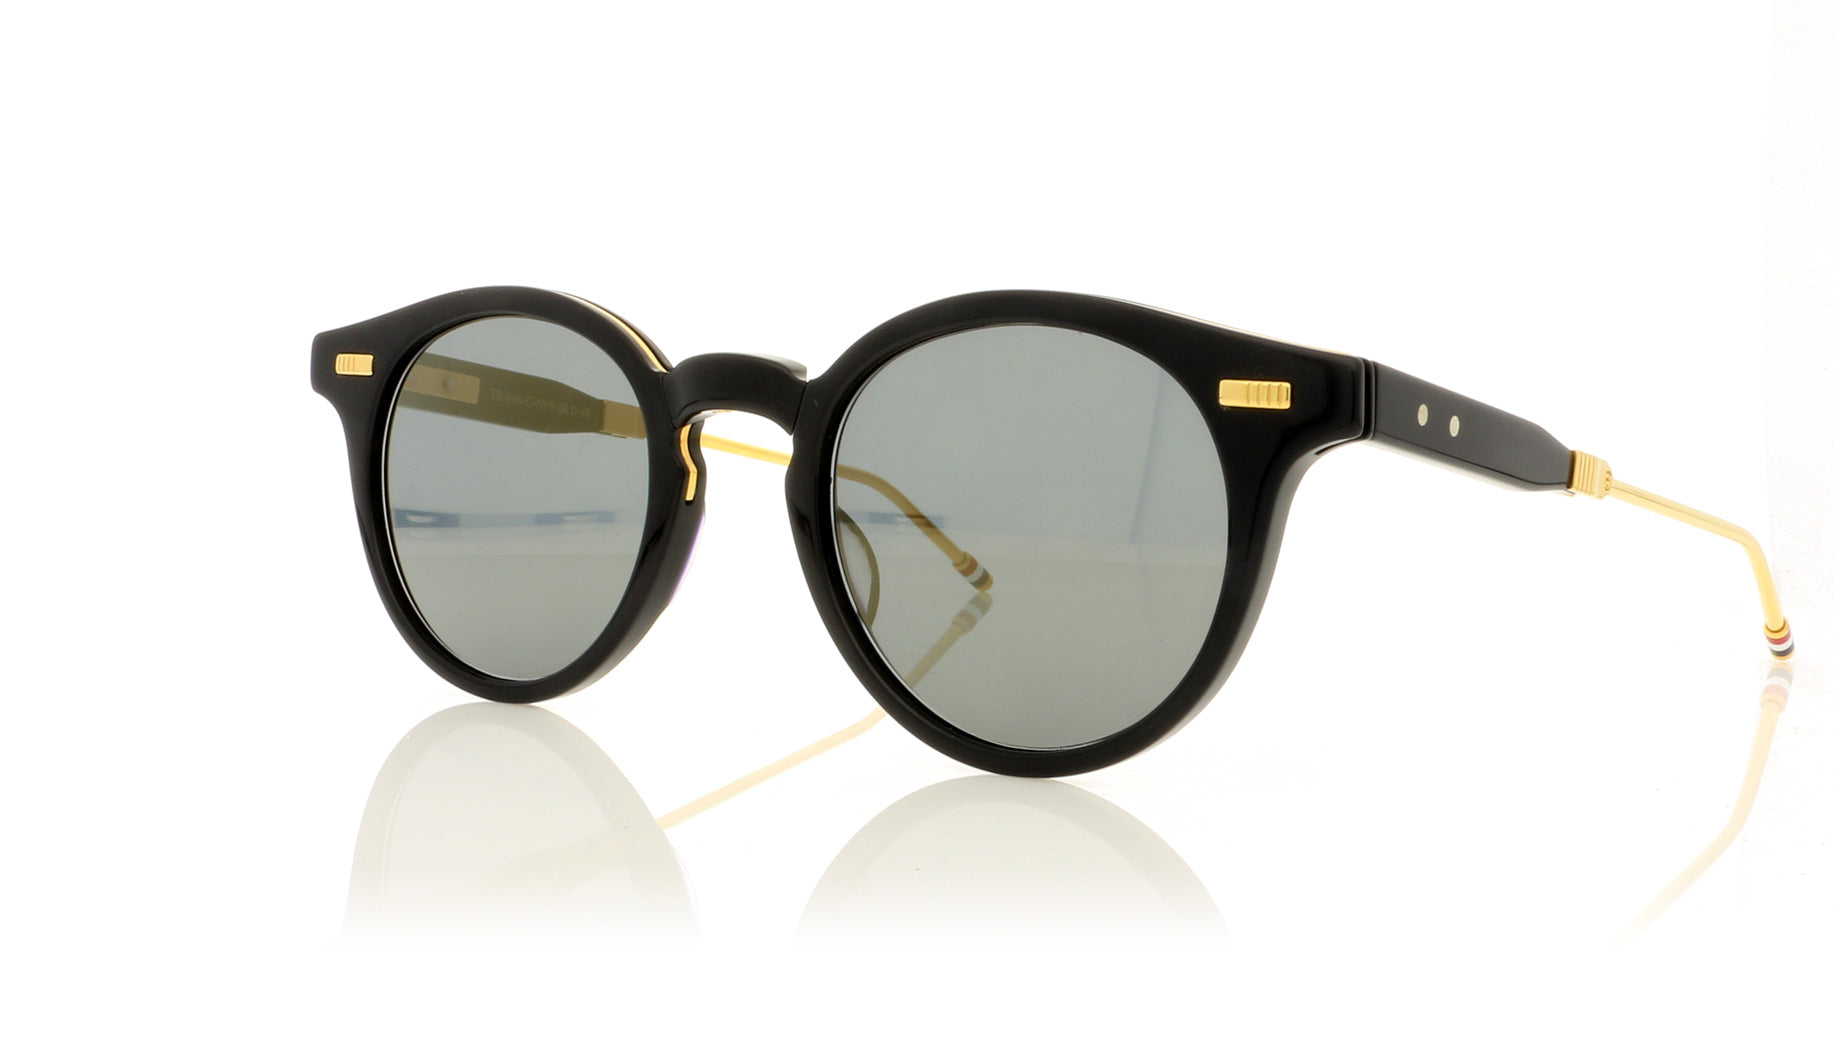 7562a1427b98 Thom Browne TB-806 C Navy Sunglasses